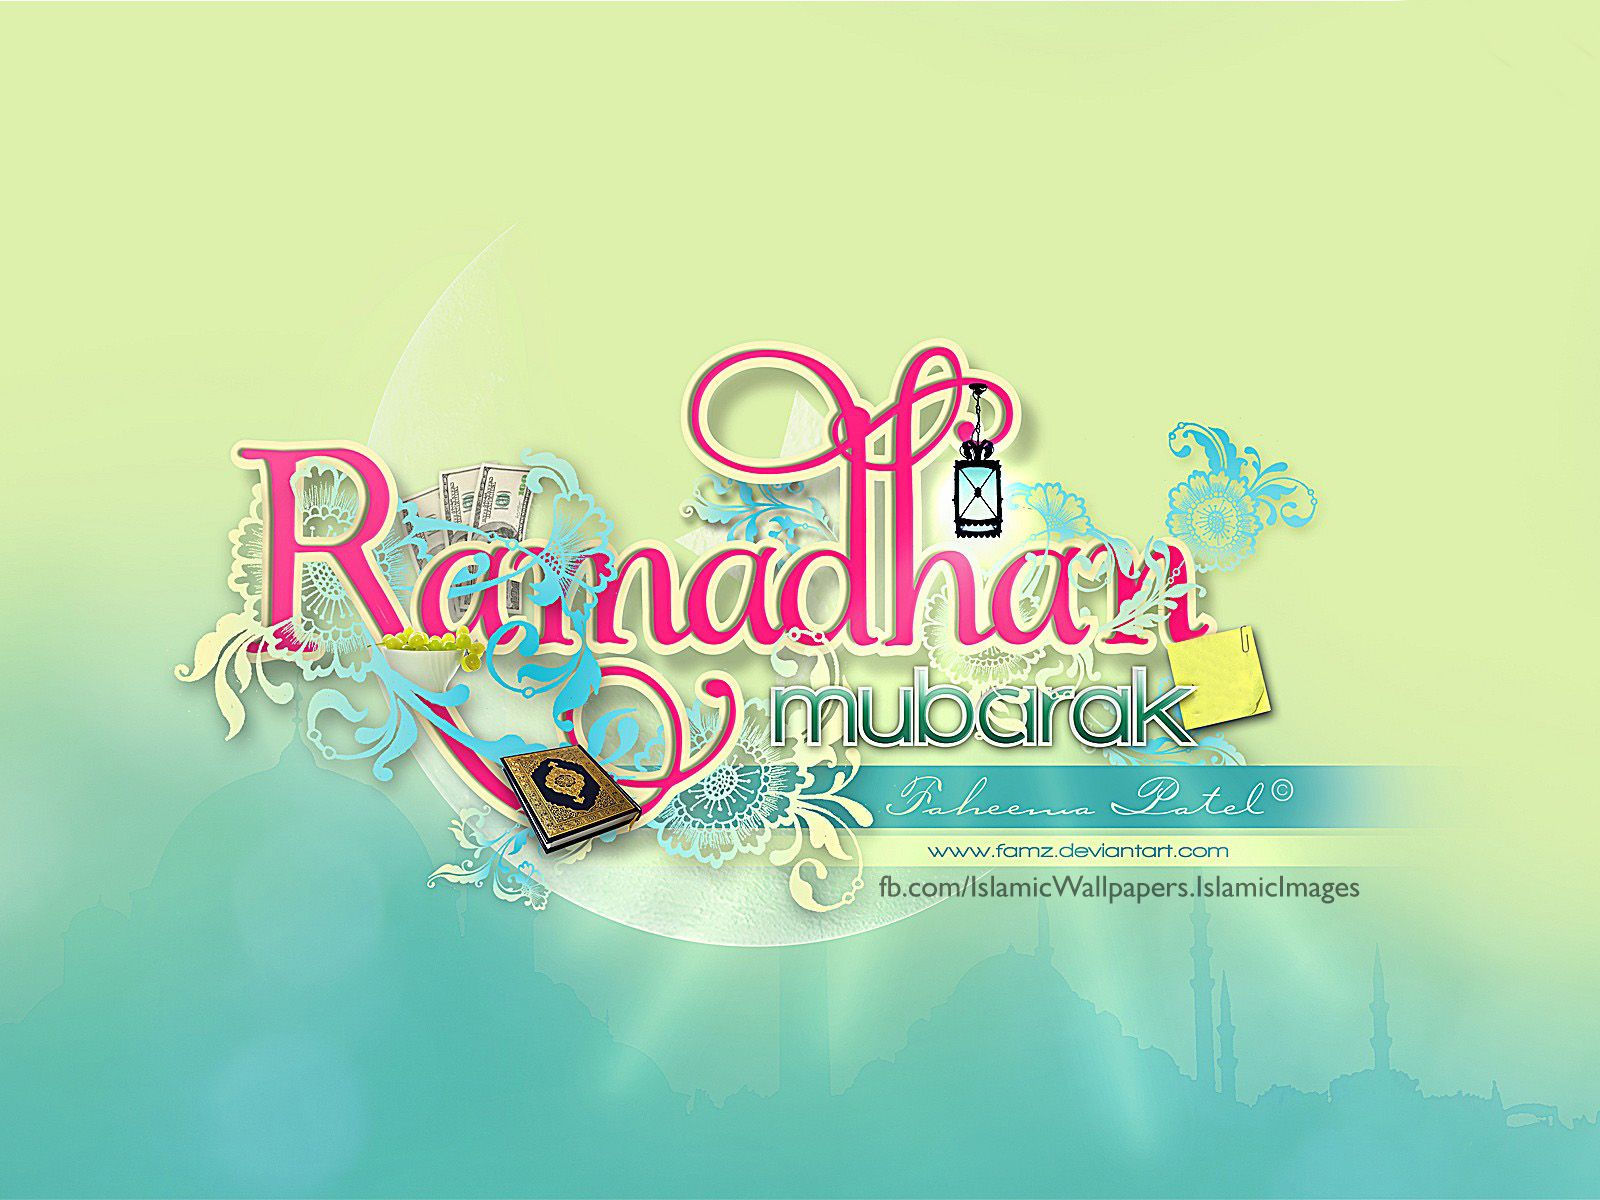 Hd wallpaper ramzan mubarak - Find Out New Ramadhan Mubarak Wallpaper Wallpaper On Http Hdpicorner Com